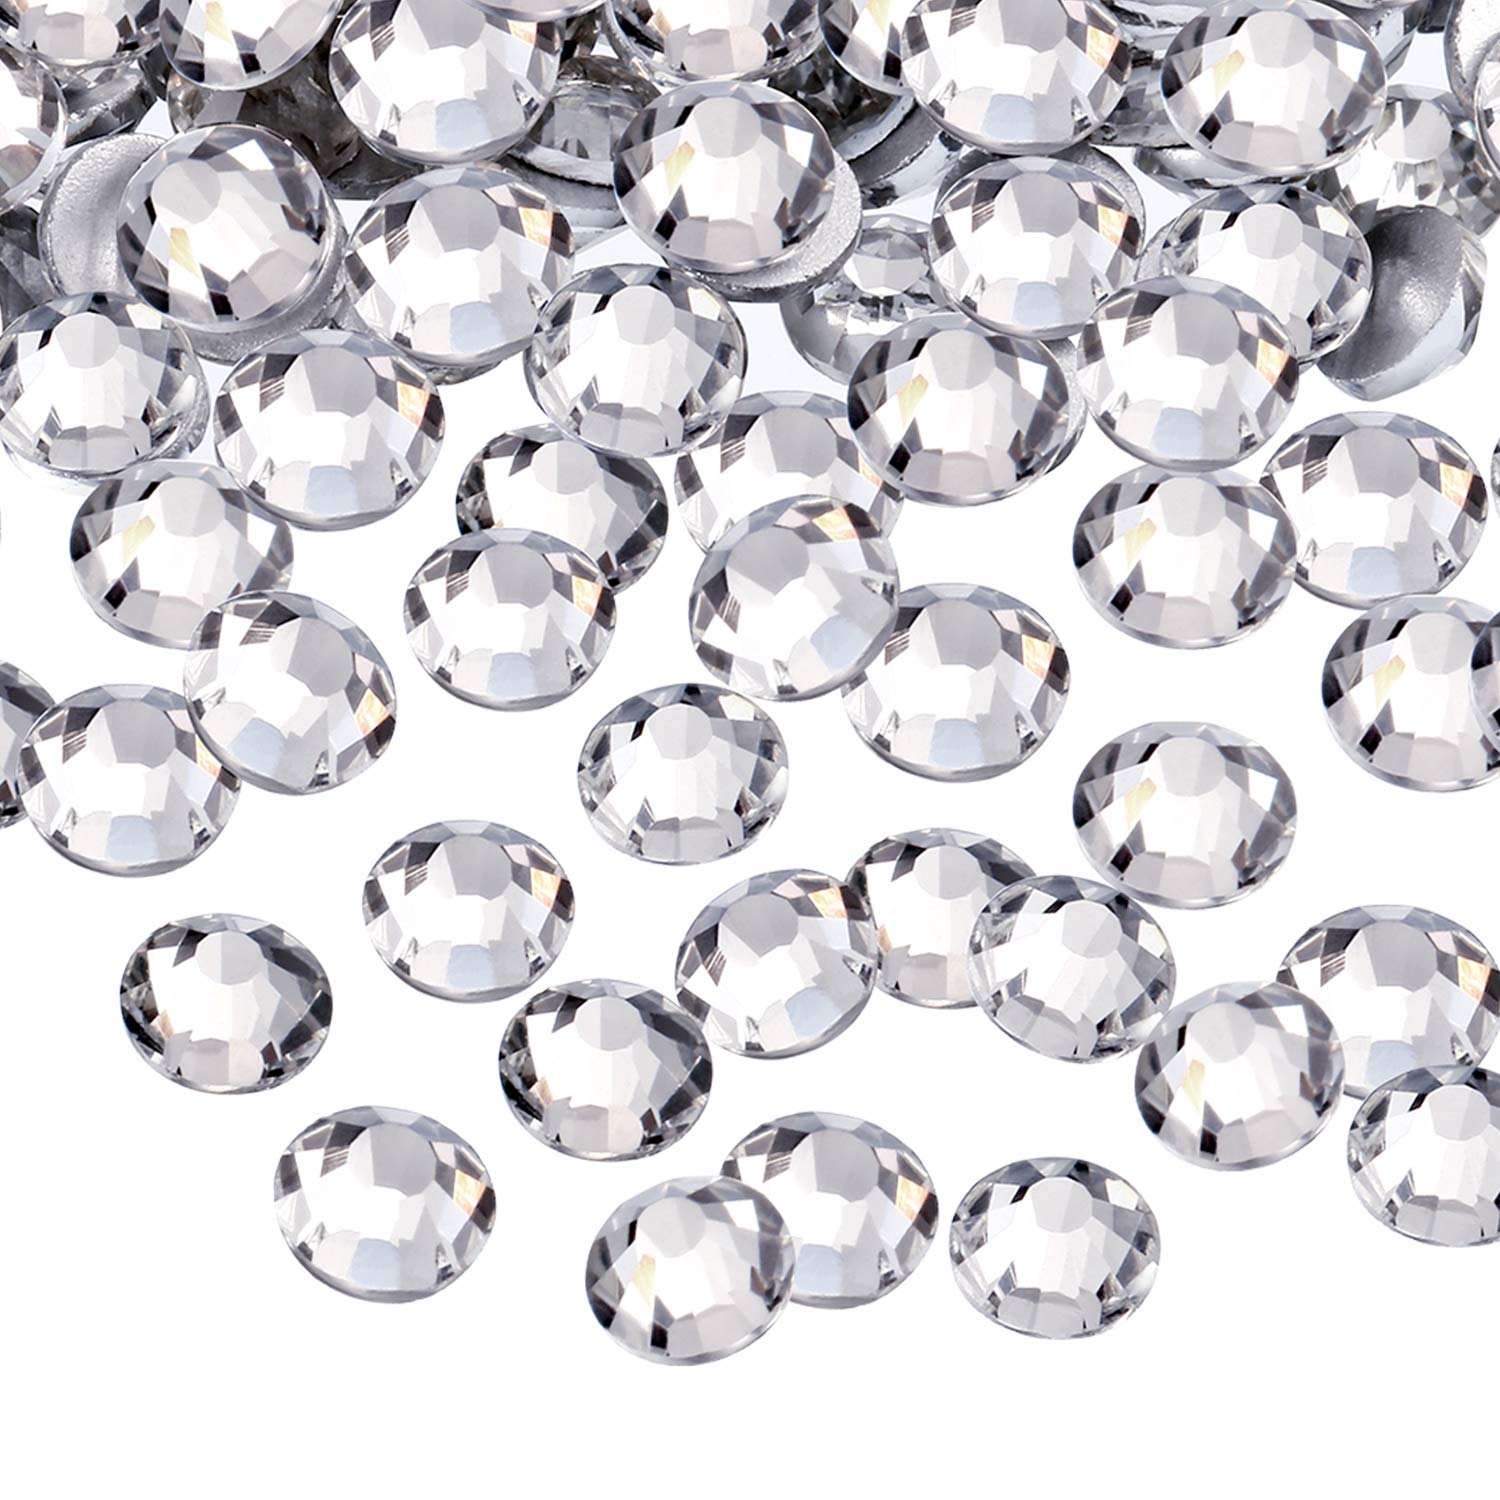 1440 Pack Crystal Flat Back Rhinestone Round Diamante Gems, Non-Self-adhesive (Clear, 4 MM) EBOOT